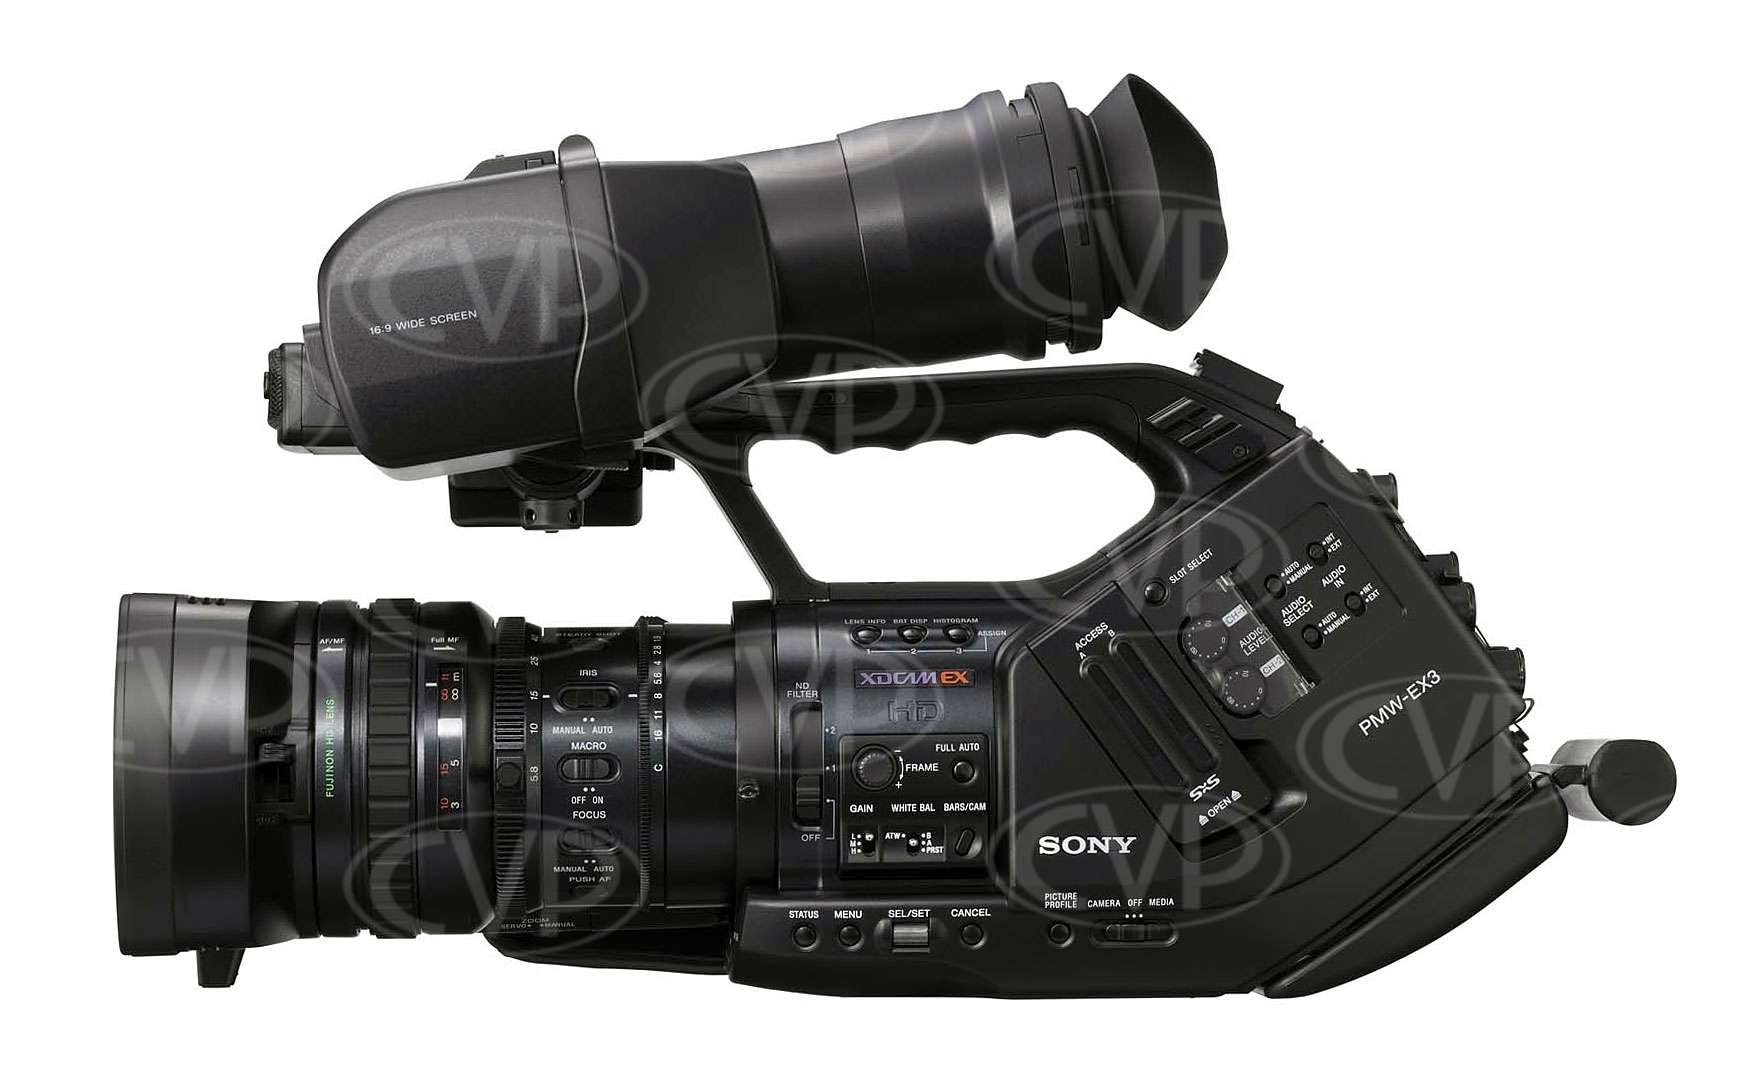 Sony PMW-EX3 LHS view